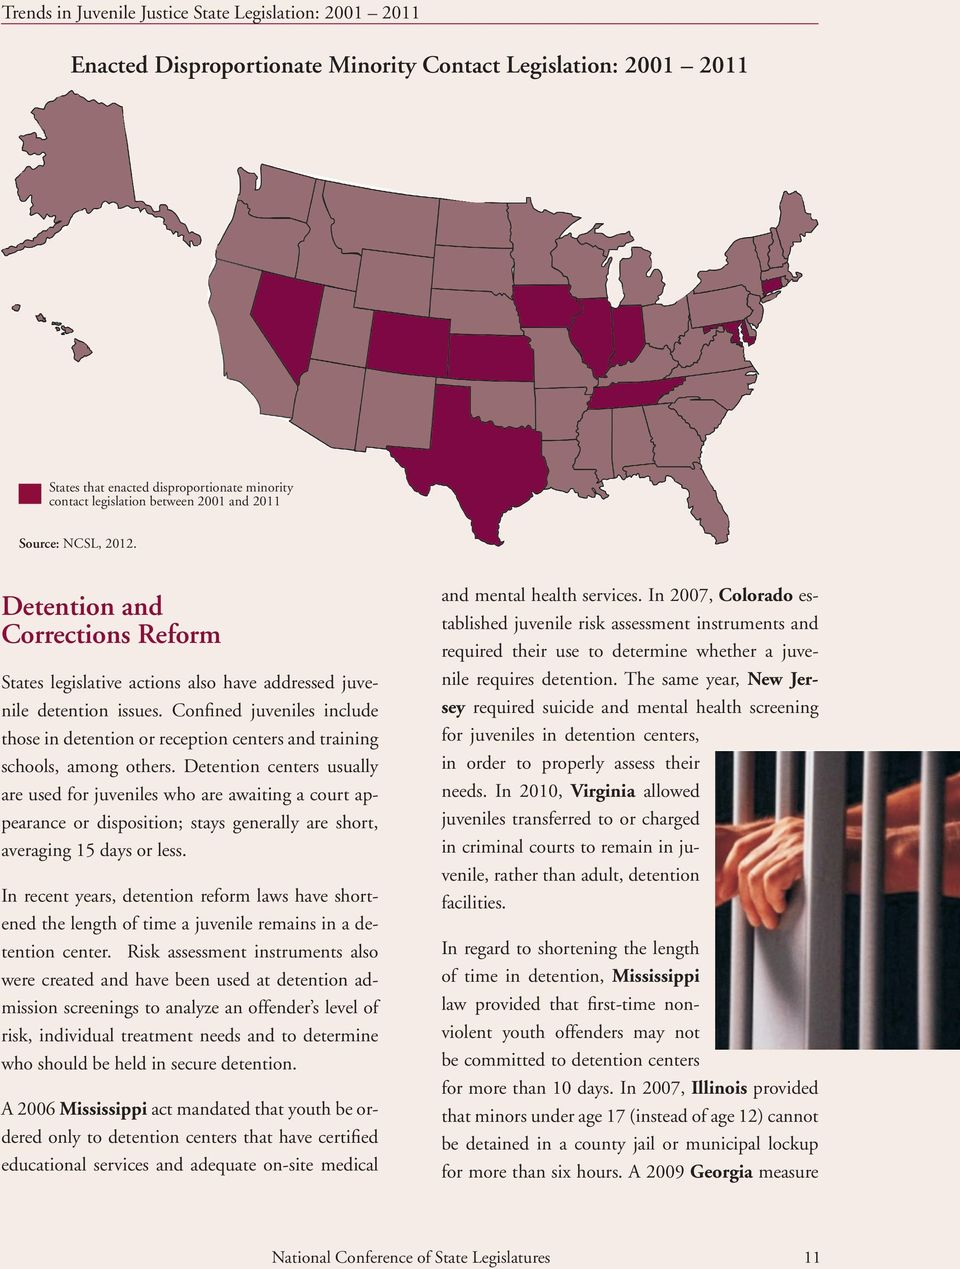 Confined juveniles include those in detention or reception centers and training schools, among others.